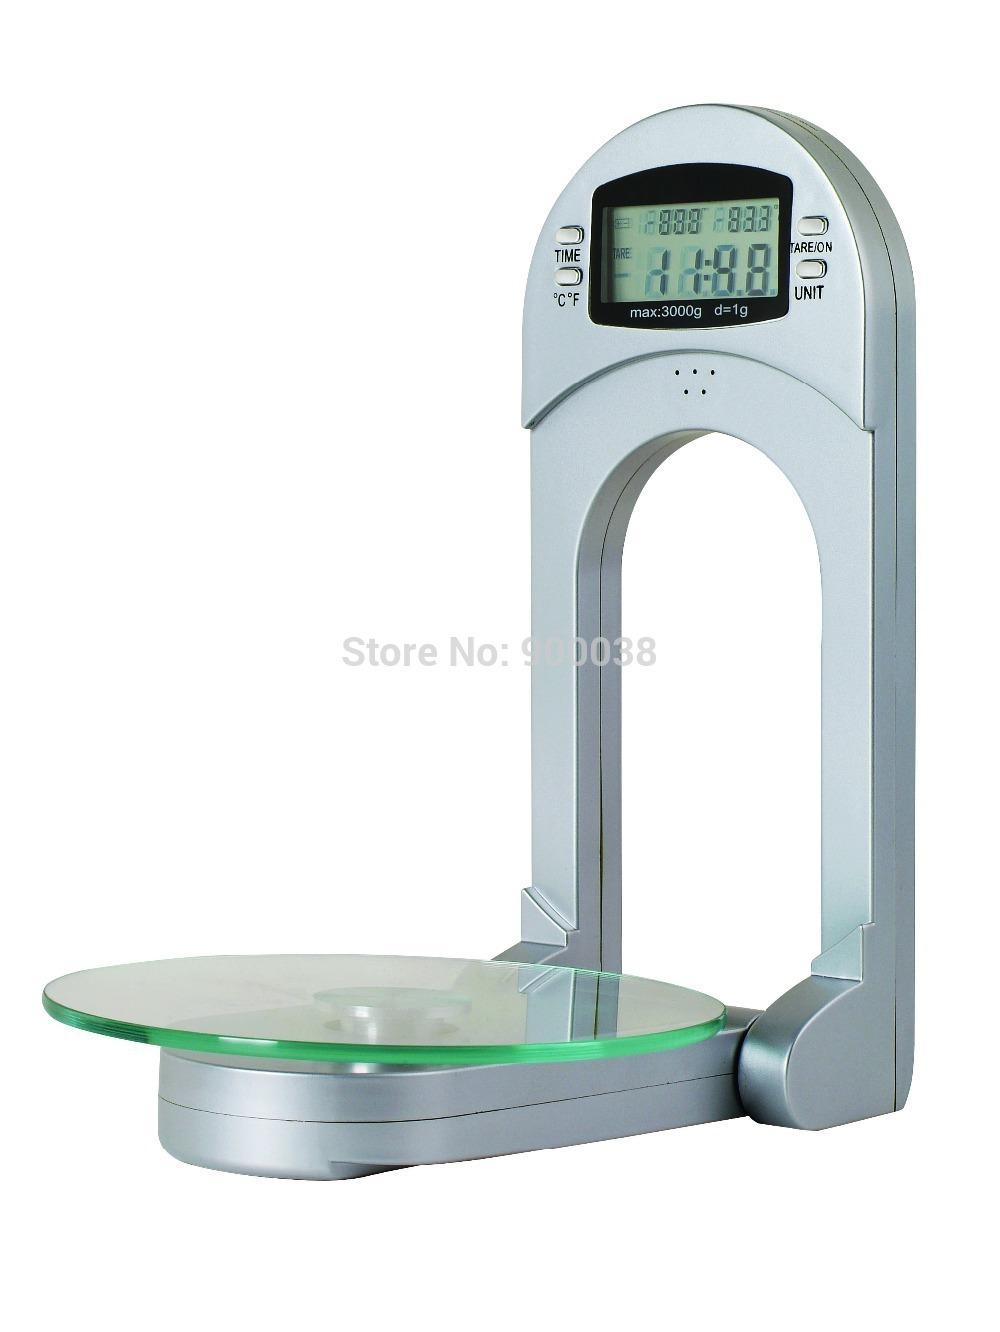 Wall Mount Kitchen Scale Digital Lcd Display 3 Kgs Max. Timer And ...